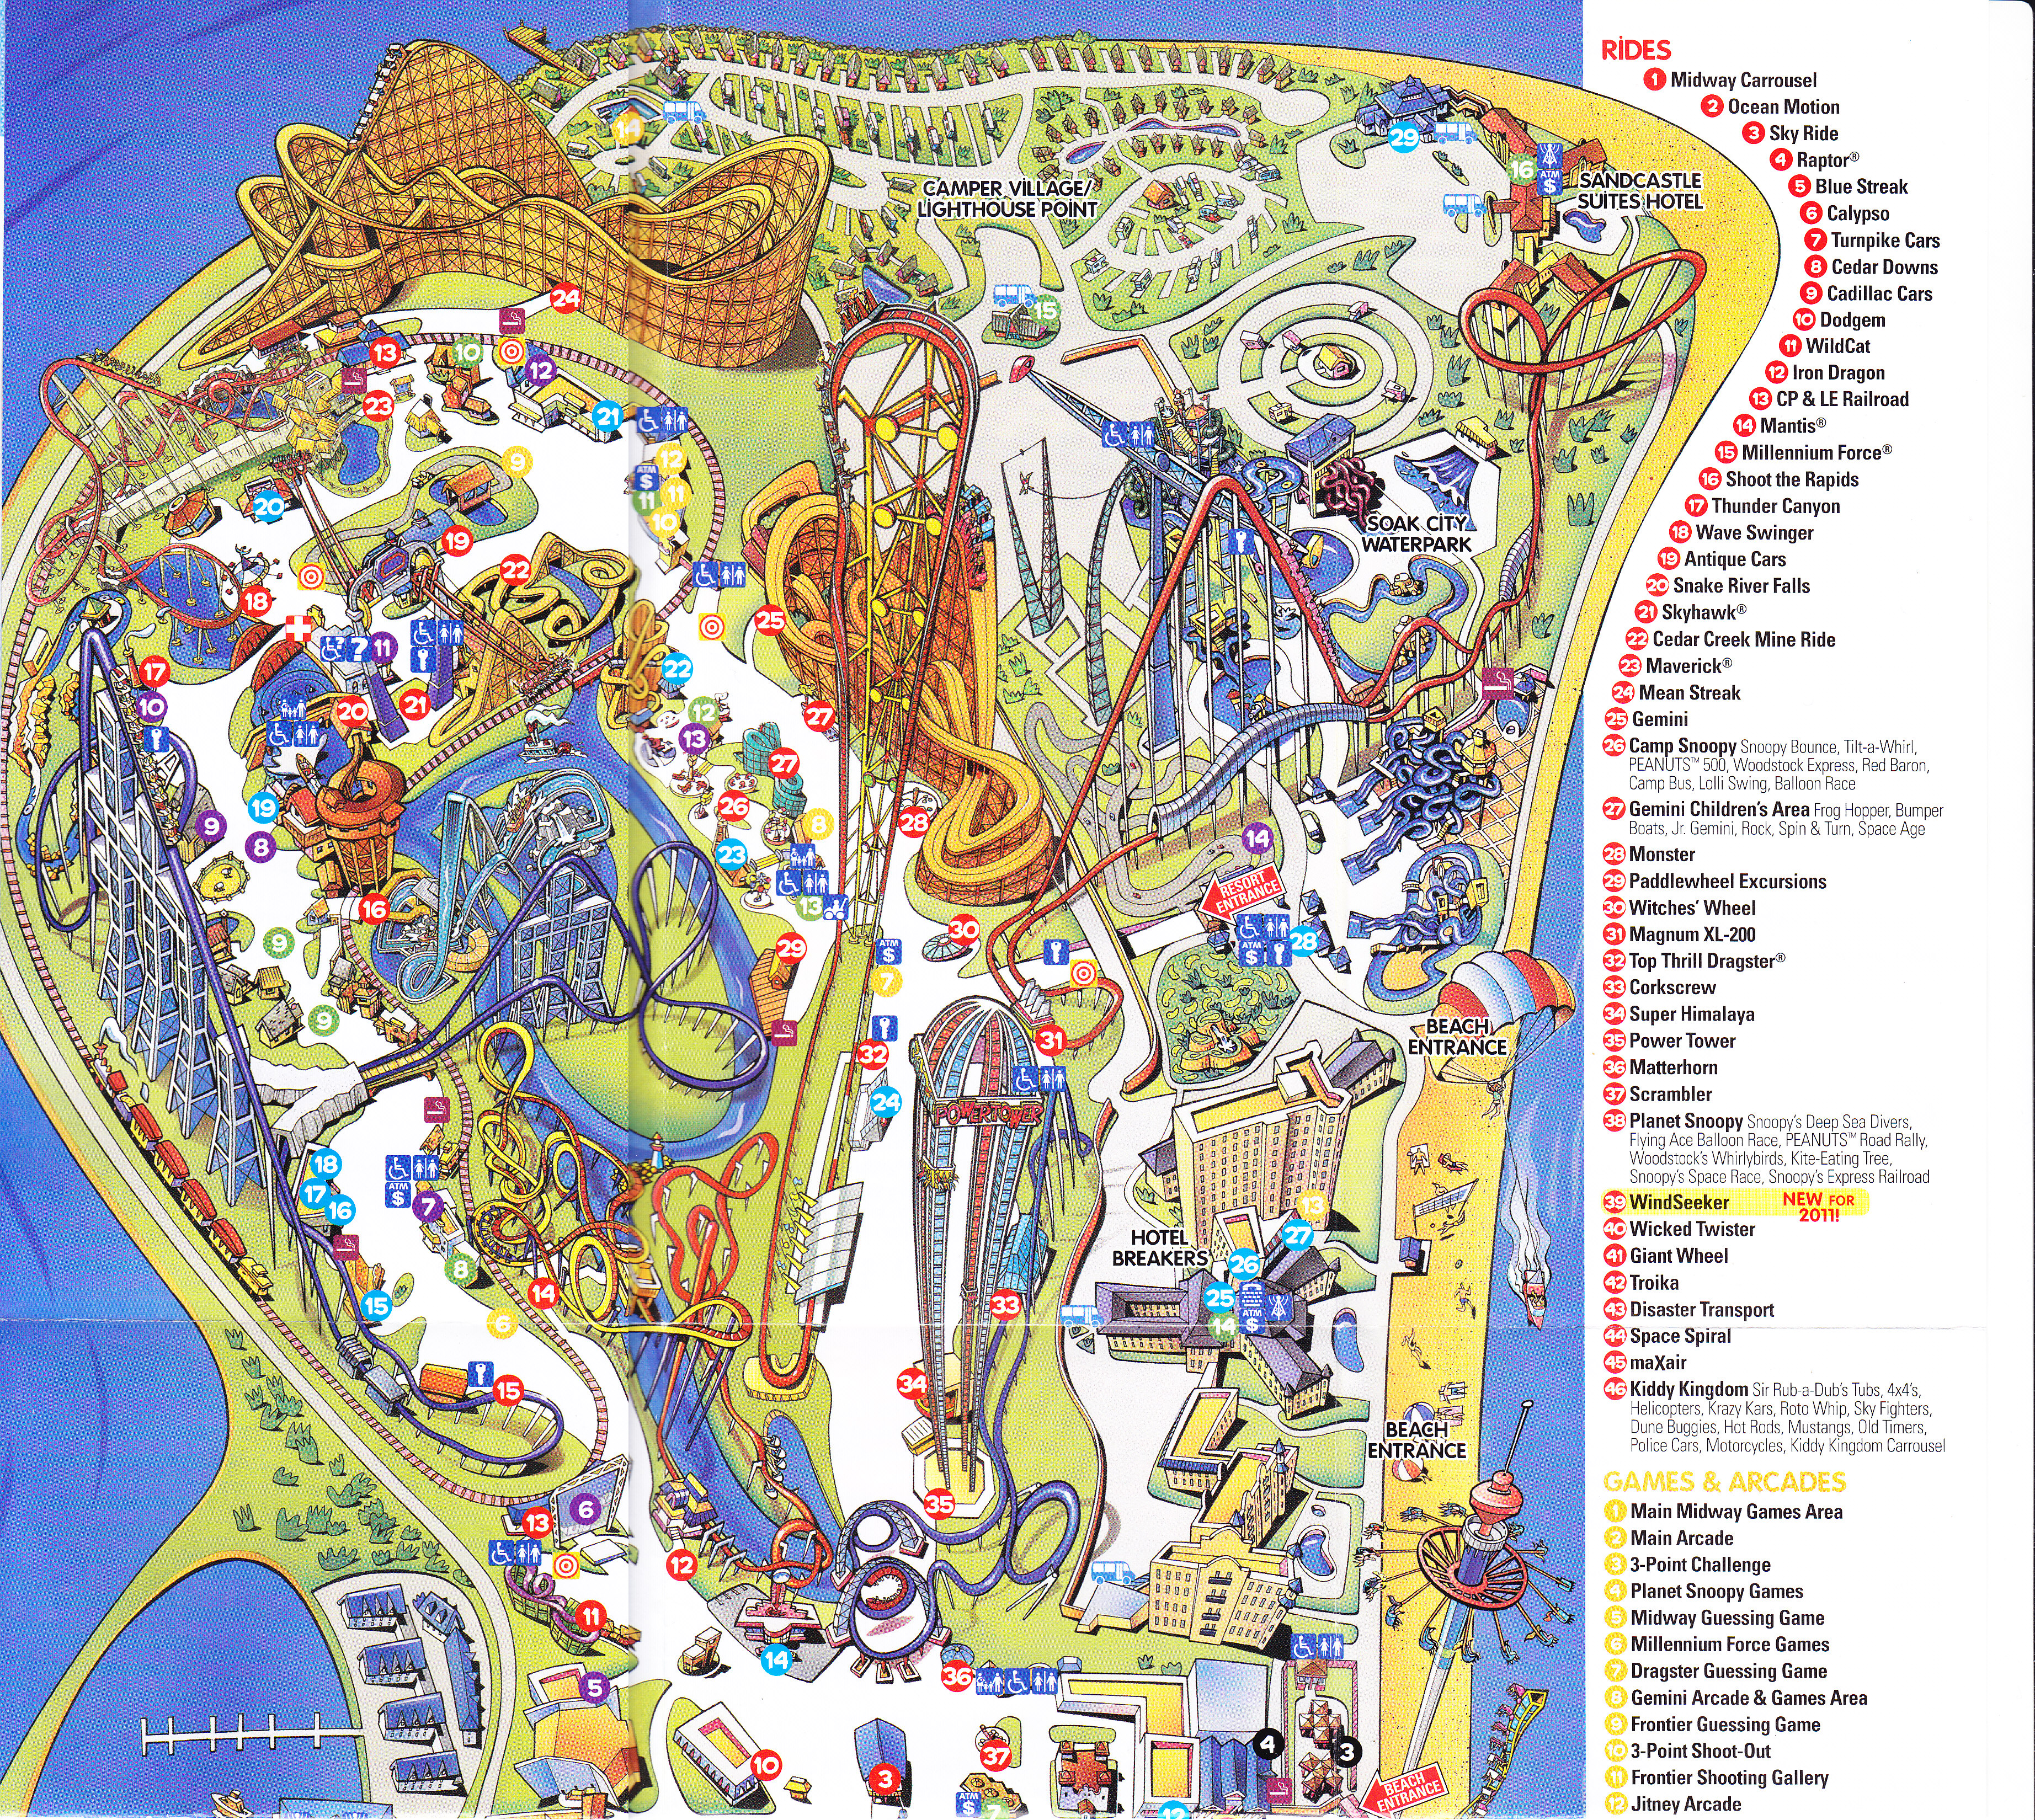 Cedar Point - 2011 Park Map on map of east des moines, map of ironwood, map of mingo county, map of lantzville, map of brethren, map of haysville, map of whiting, map of dwight, map of grand traverse, map of newville, map of boyne falls, map of audubon, map of mahaska county, map of leelanau, map of callaway, map of chariton, map of nanoose, map of tanoak, map of citrus, map of saint johns,